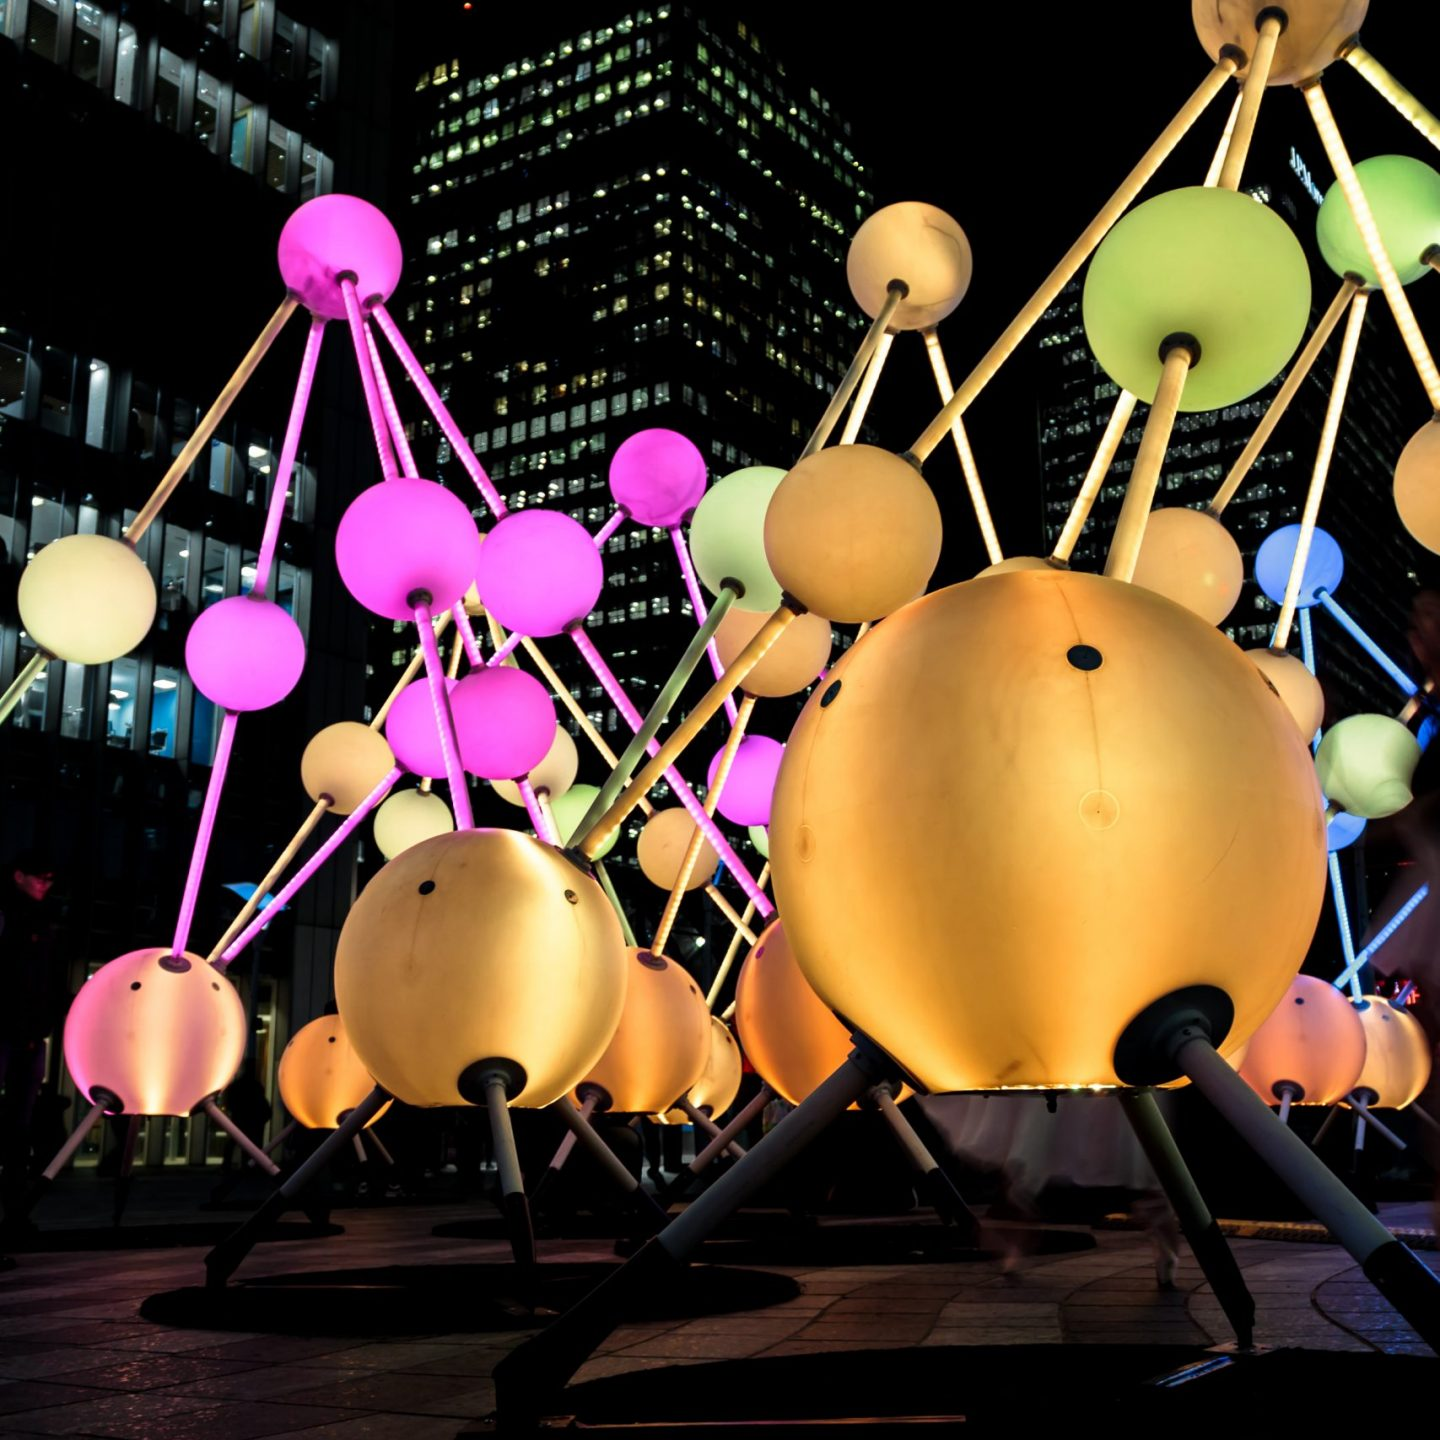 Canary Wharf Winter Lights 2020 - Affinity by Amigo & Amgio and S1T2